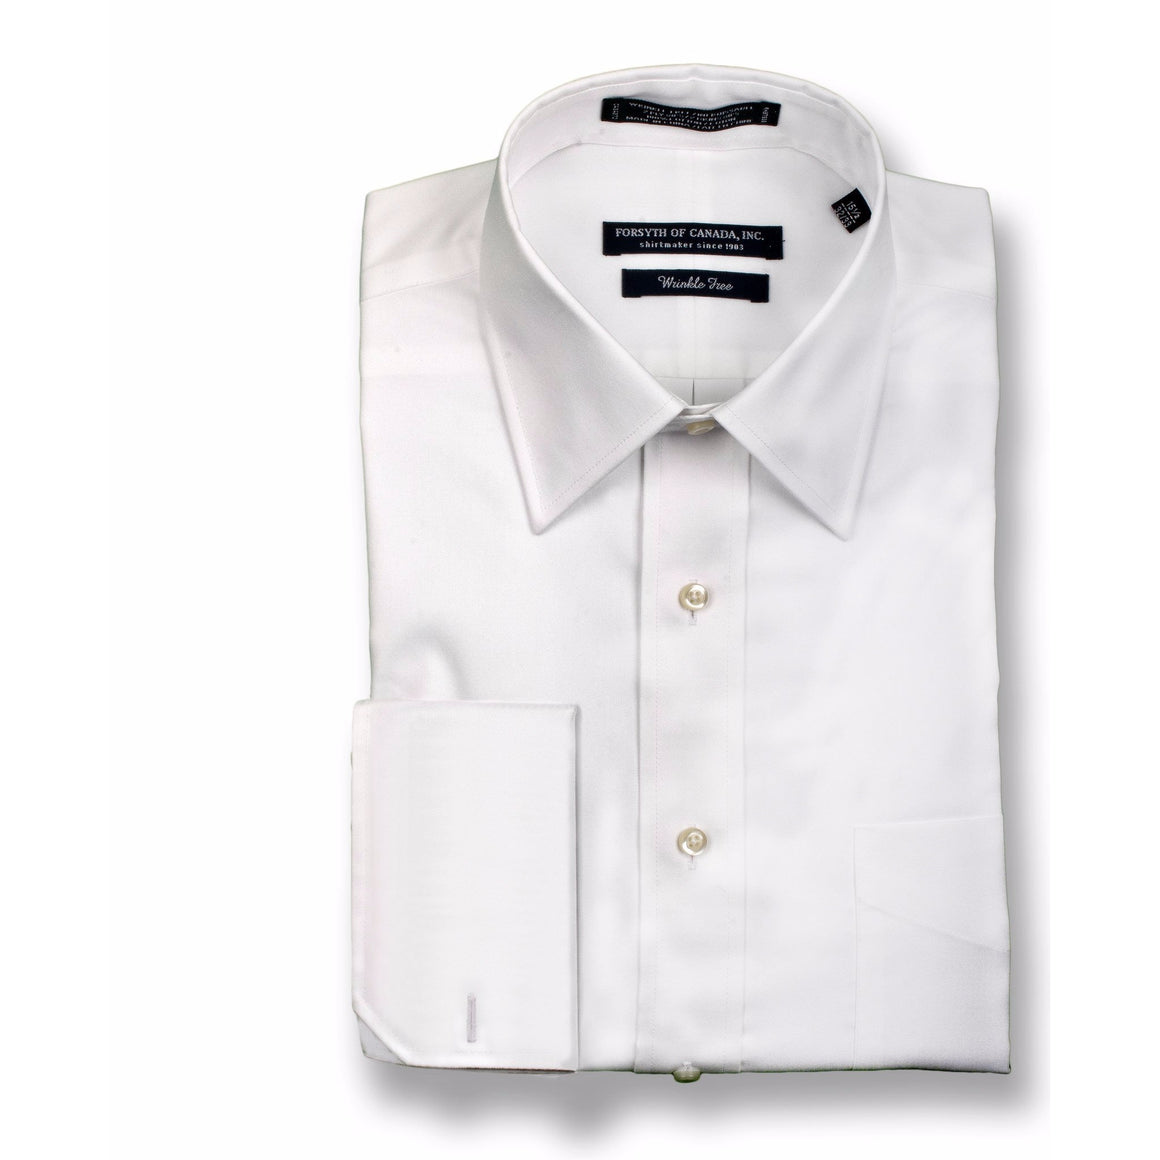 FORSYTH OF CANADA™ - THE FREEDOM SHIRT™ -  LUXURY 2 PLY COTTON - FRENCH CUFF - 539MAIN - 1